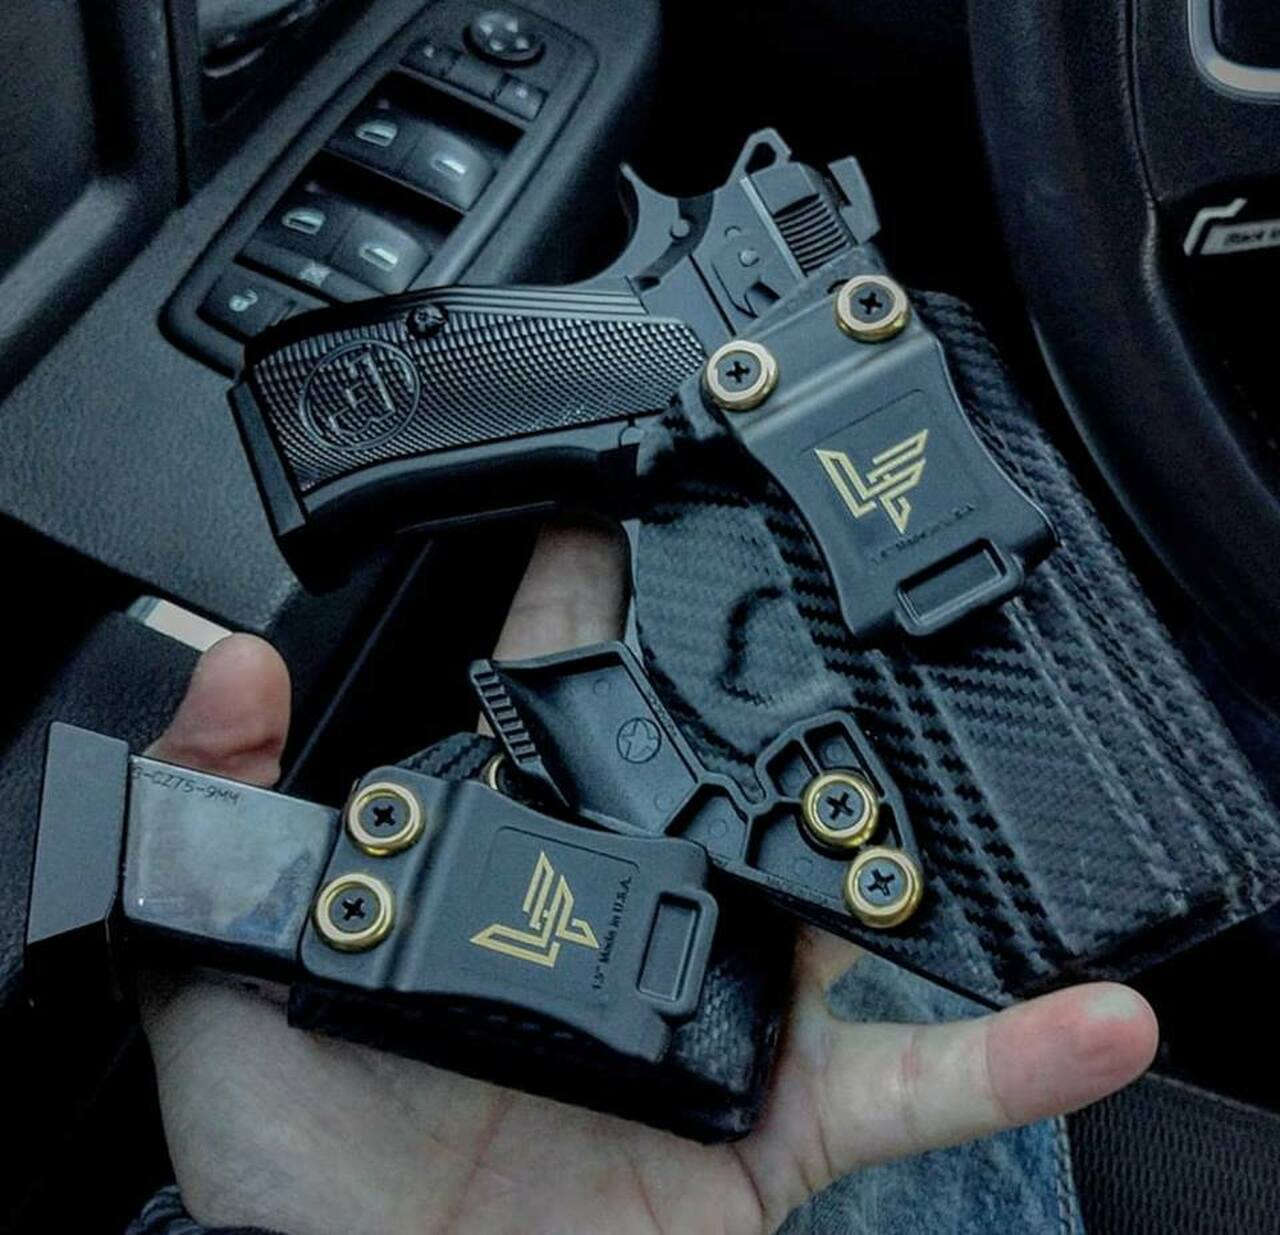 CZ P-01 Kydex Holster and Magazine Carrier